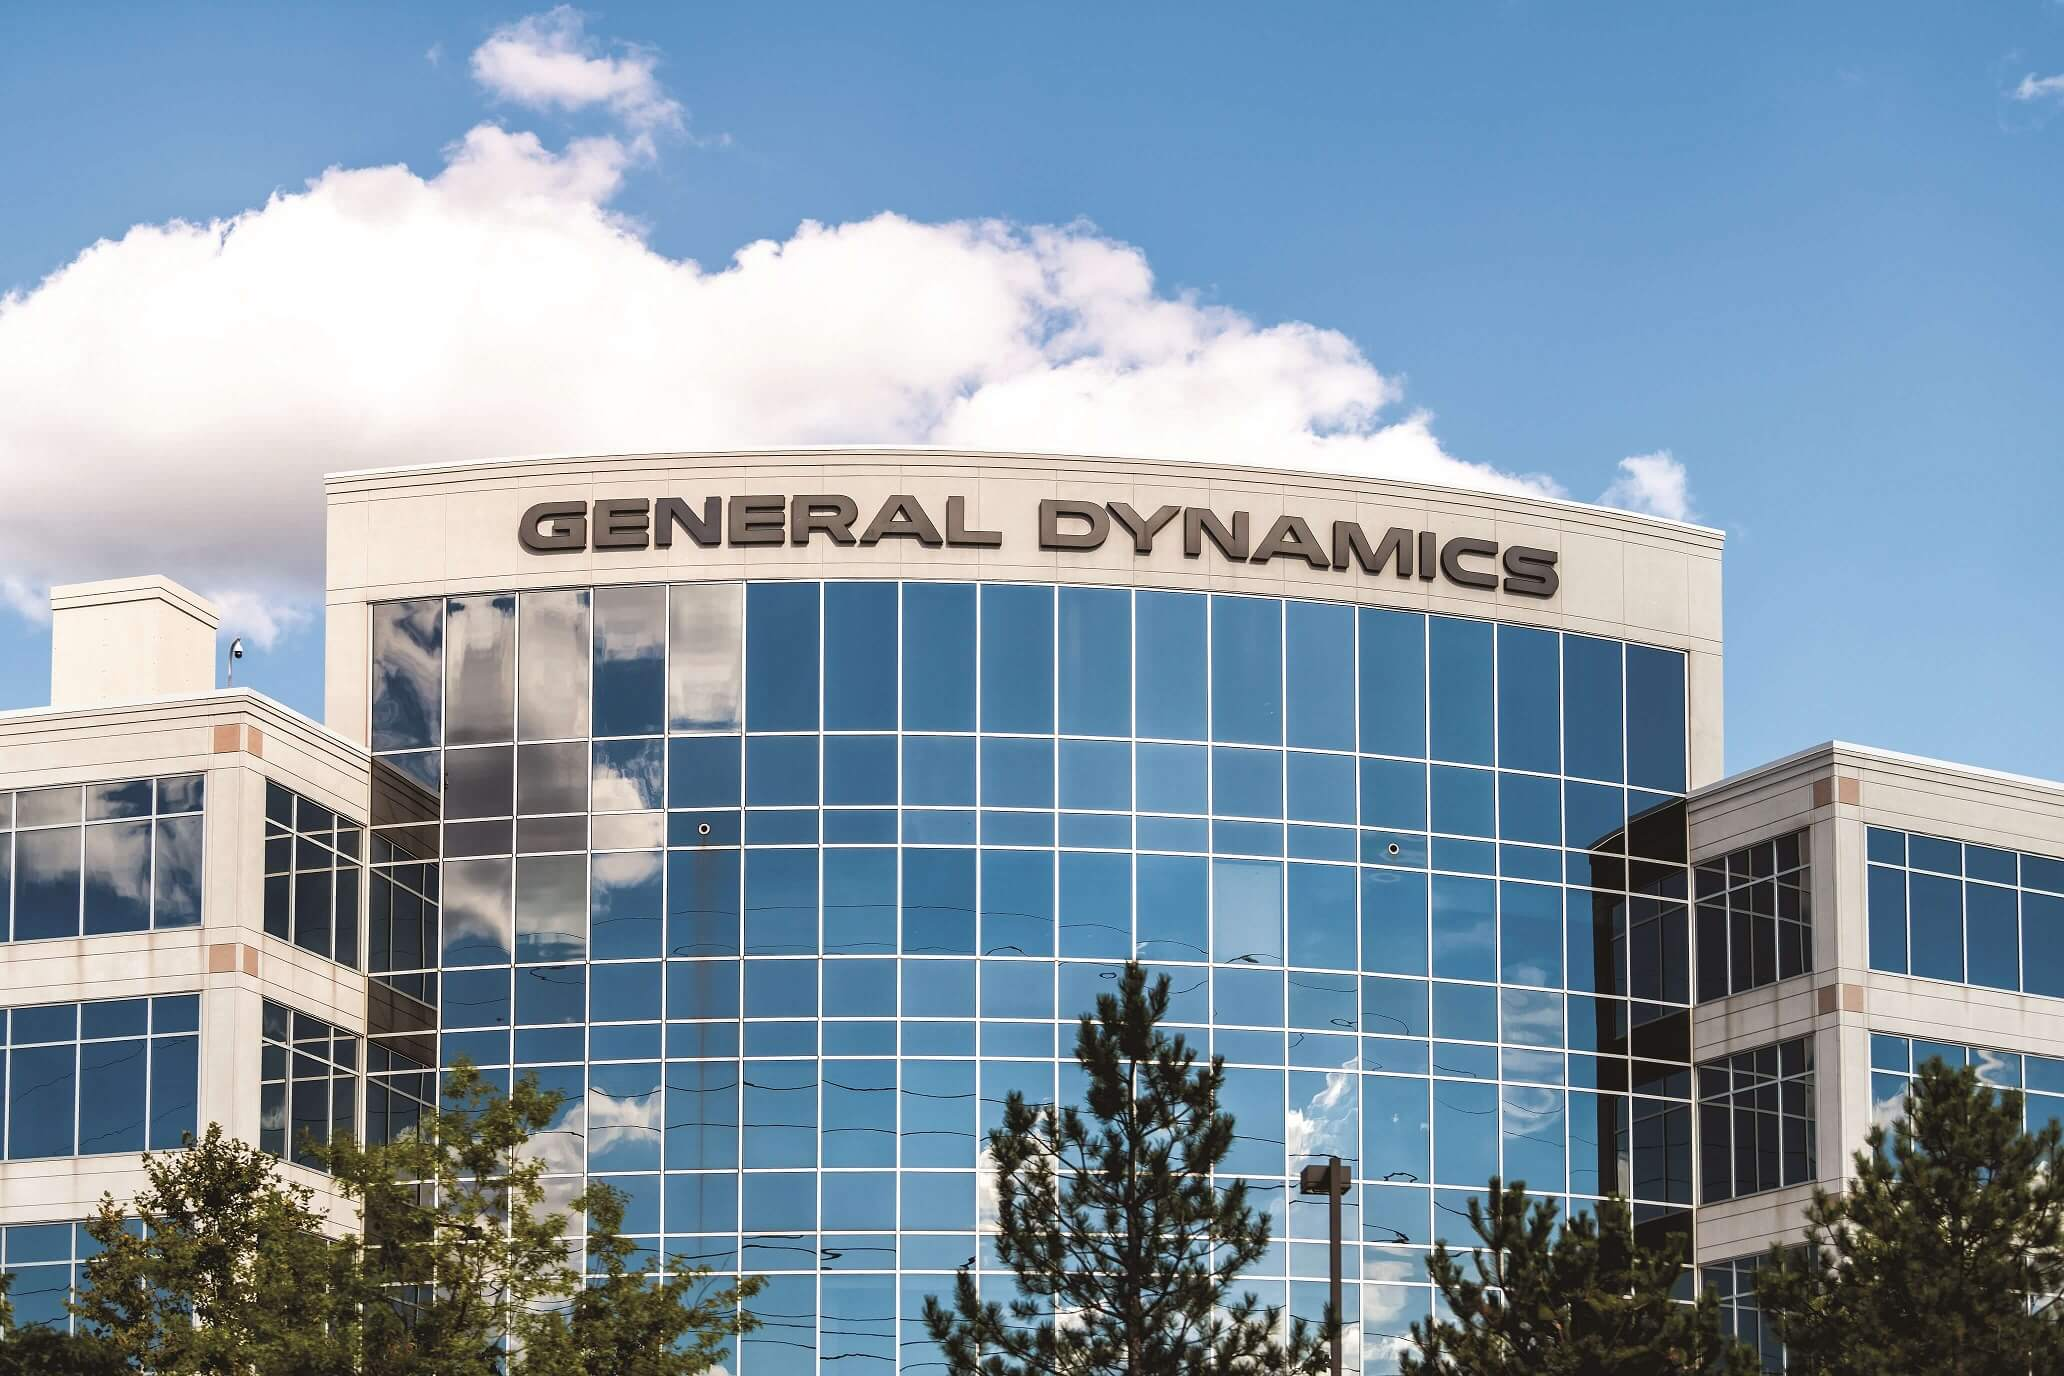 commercial-company-general-dynamics-real-estate (1)